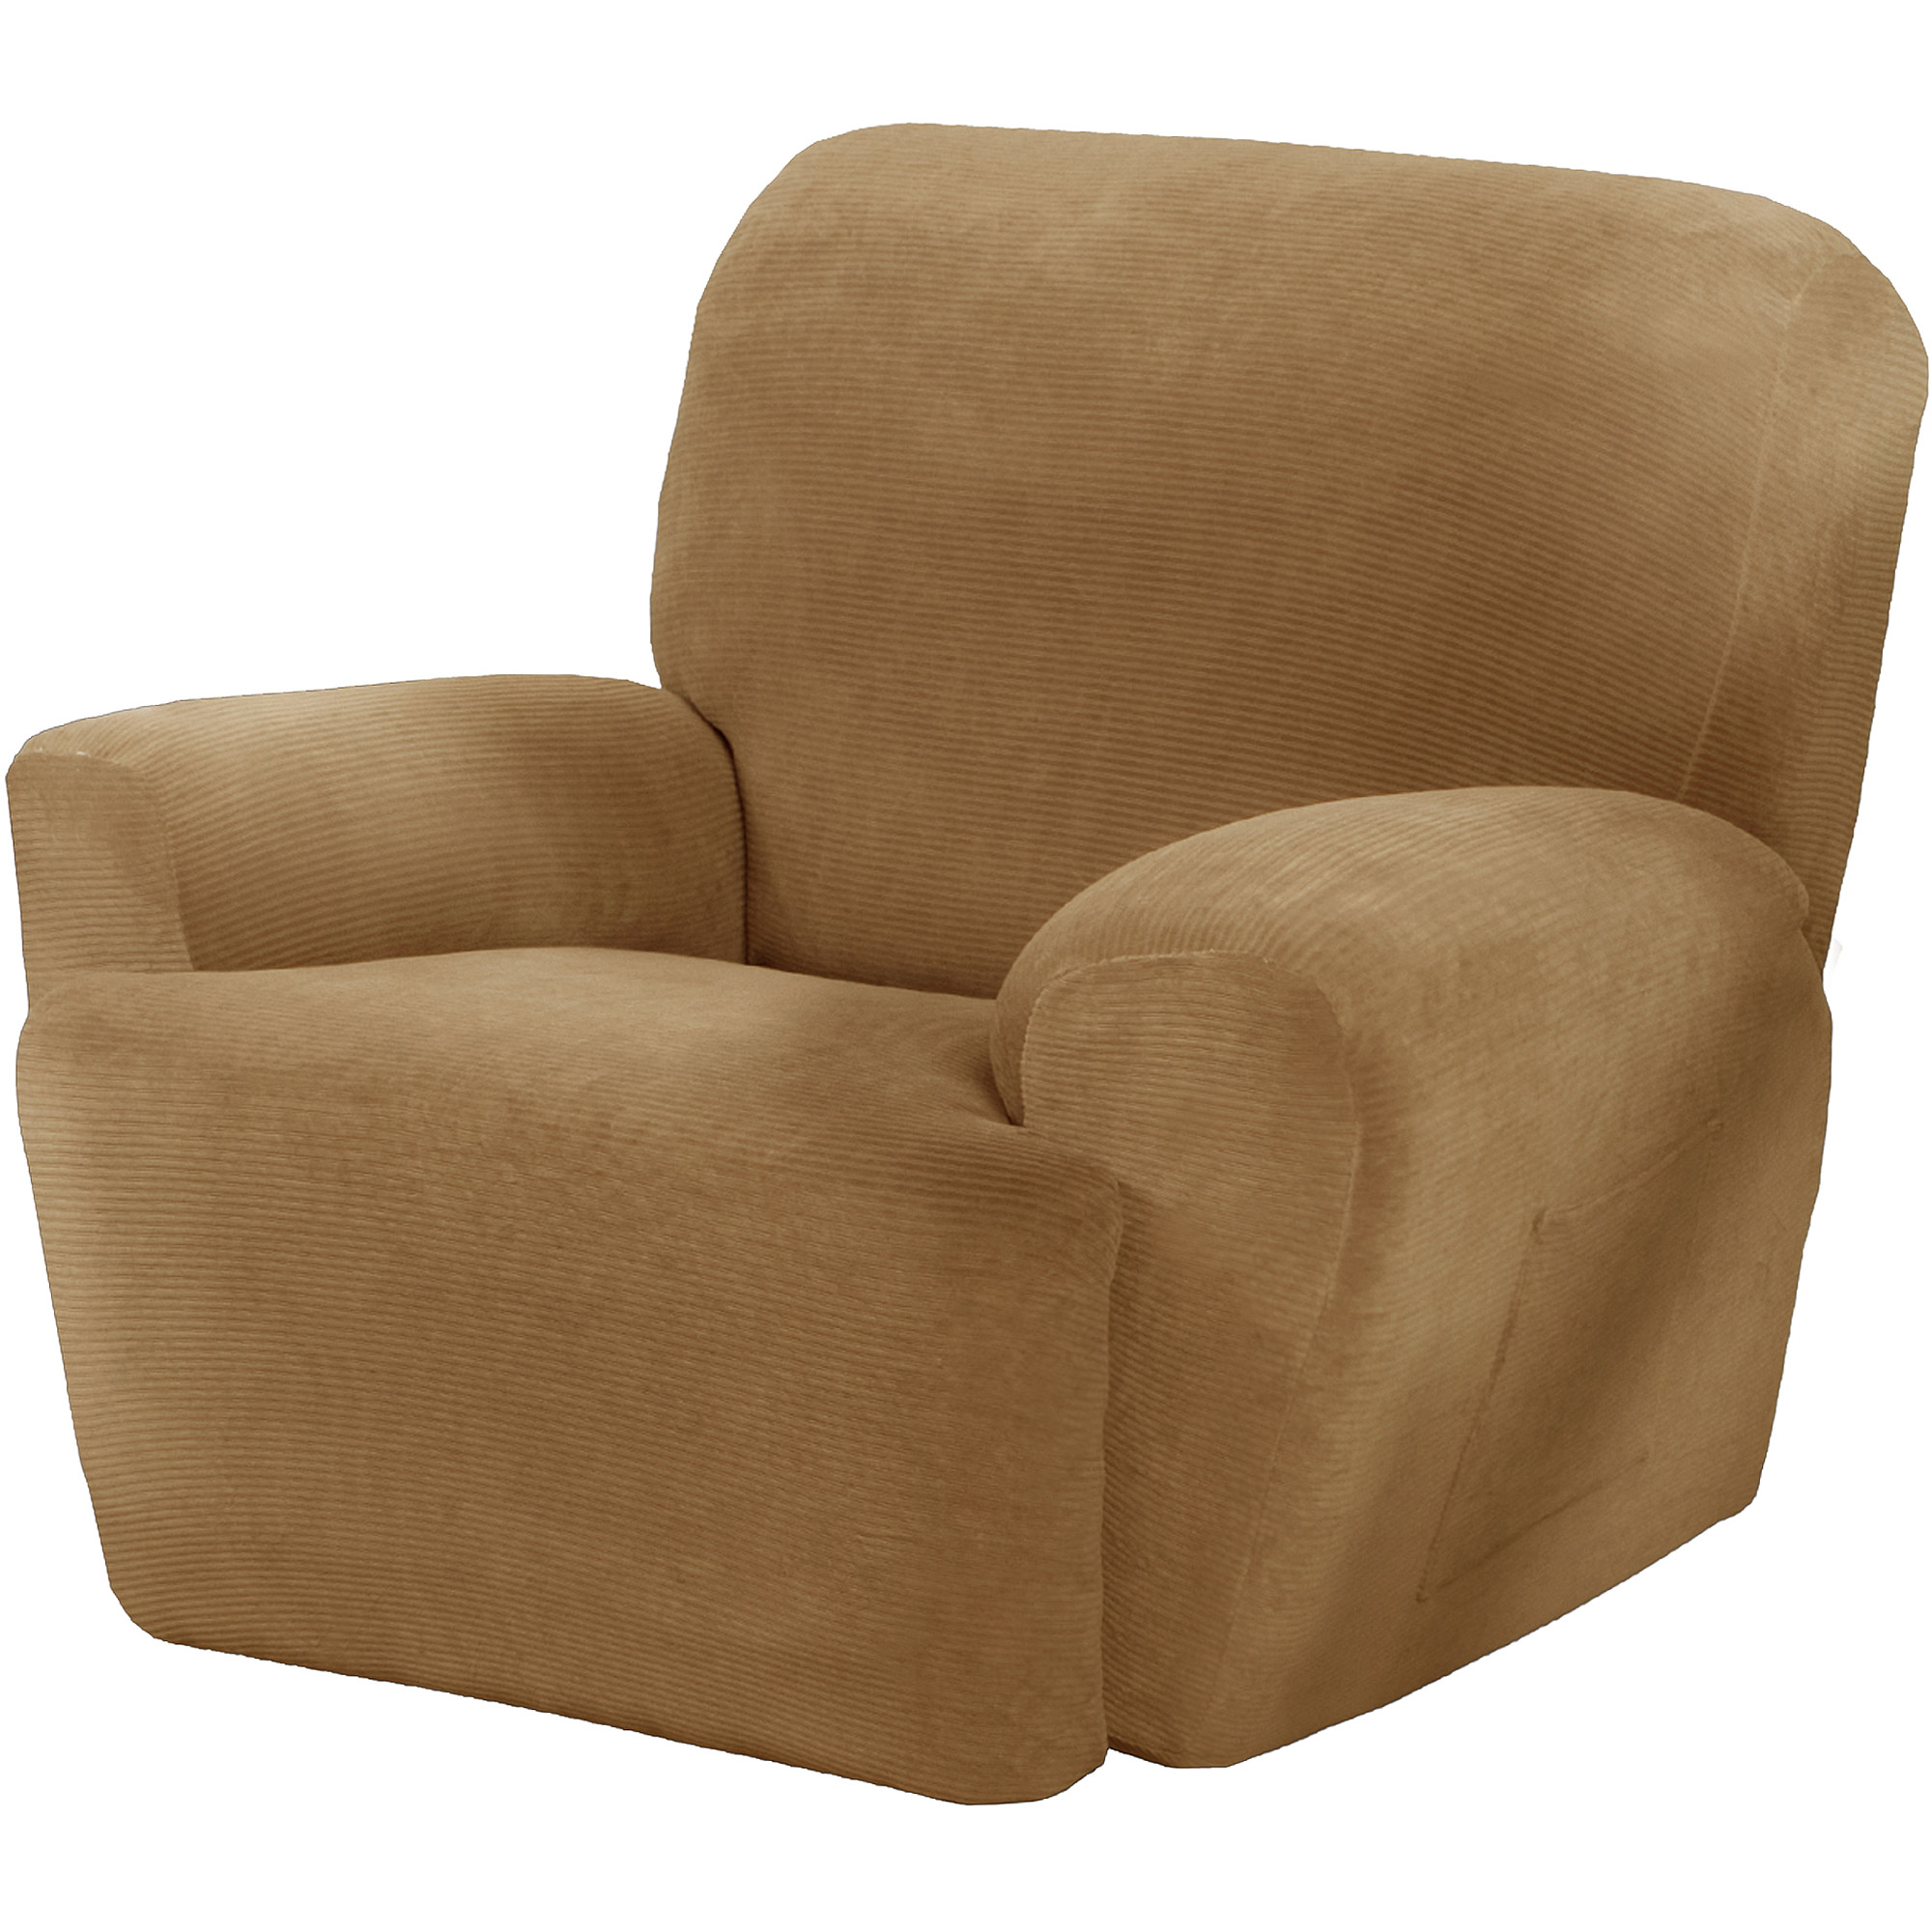 cheap with at separate walmart footrest slipcovers for wooden recliners slipcover arms